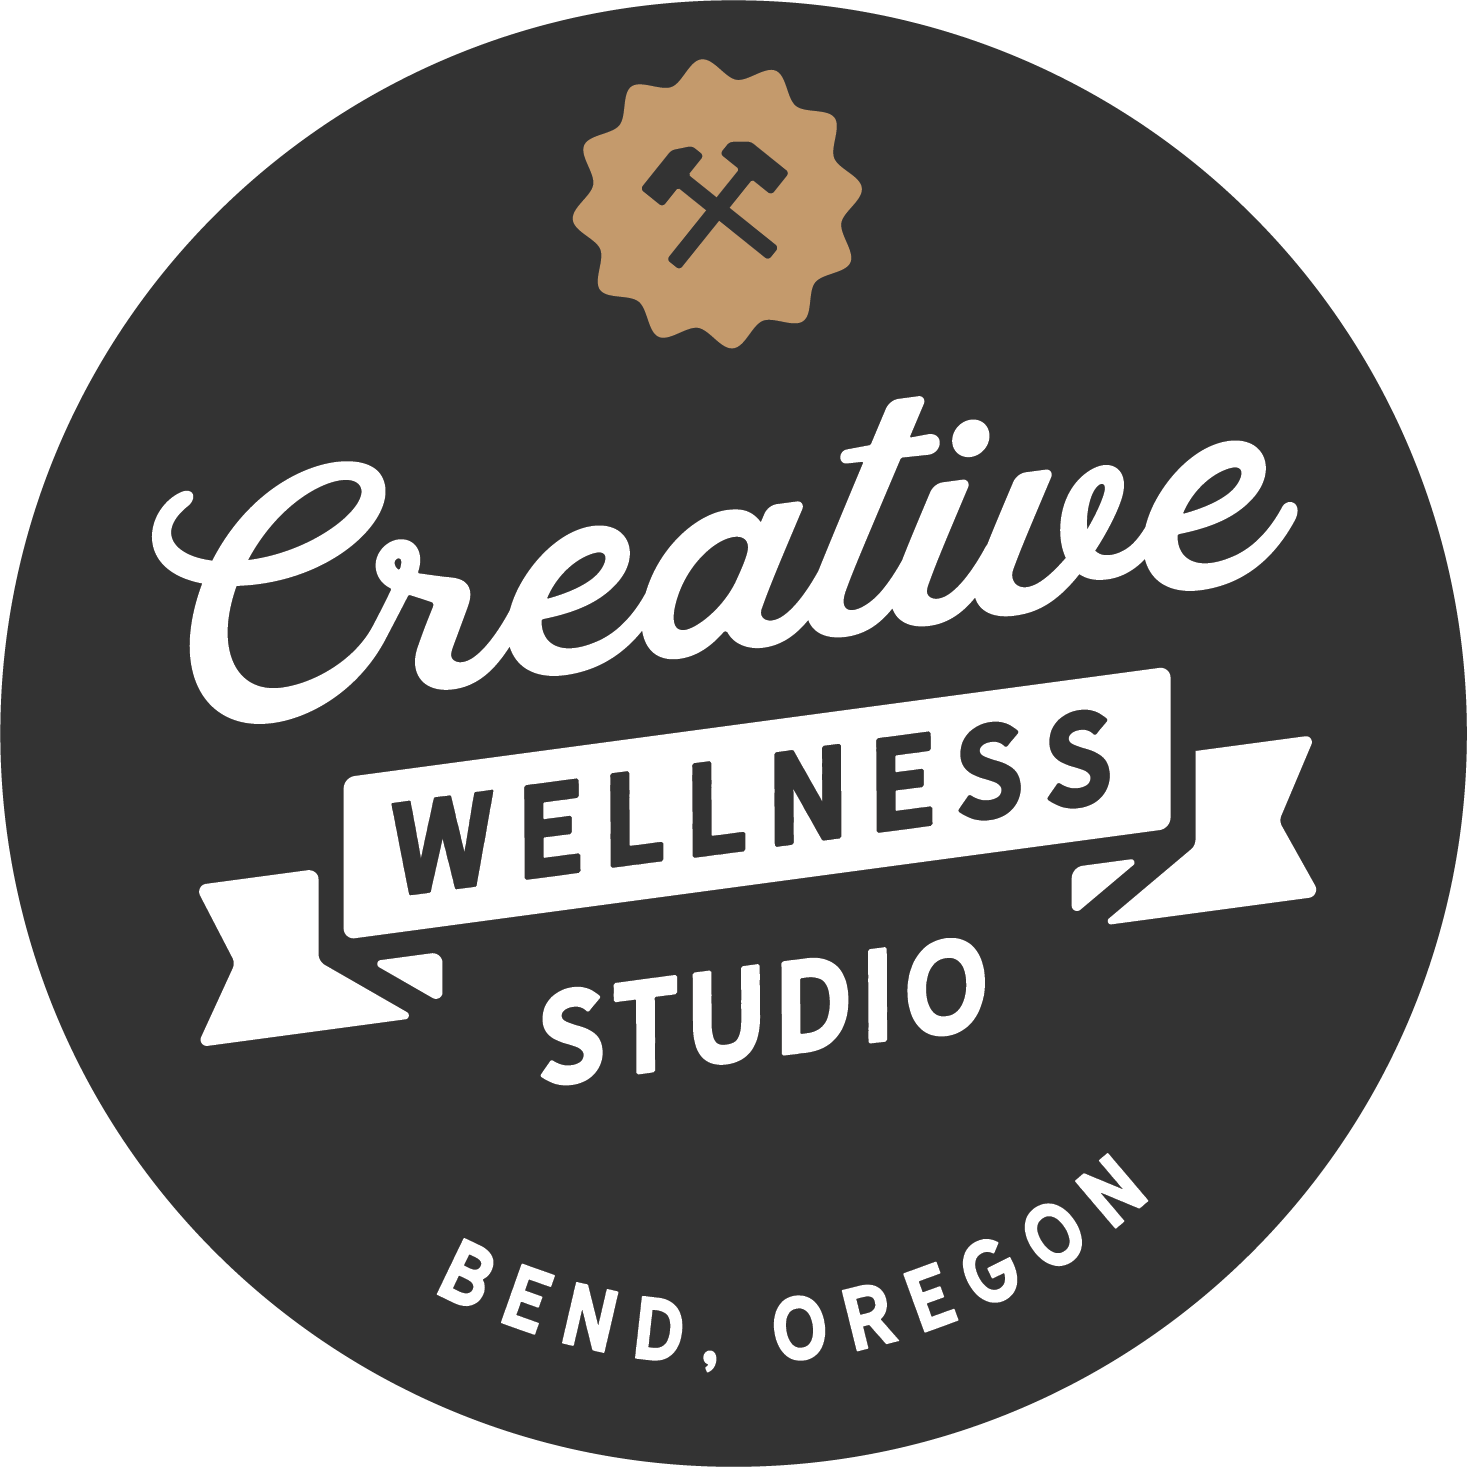 Creative Wellness Studio